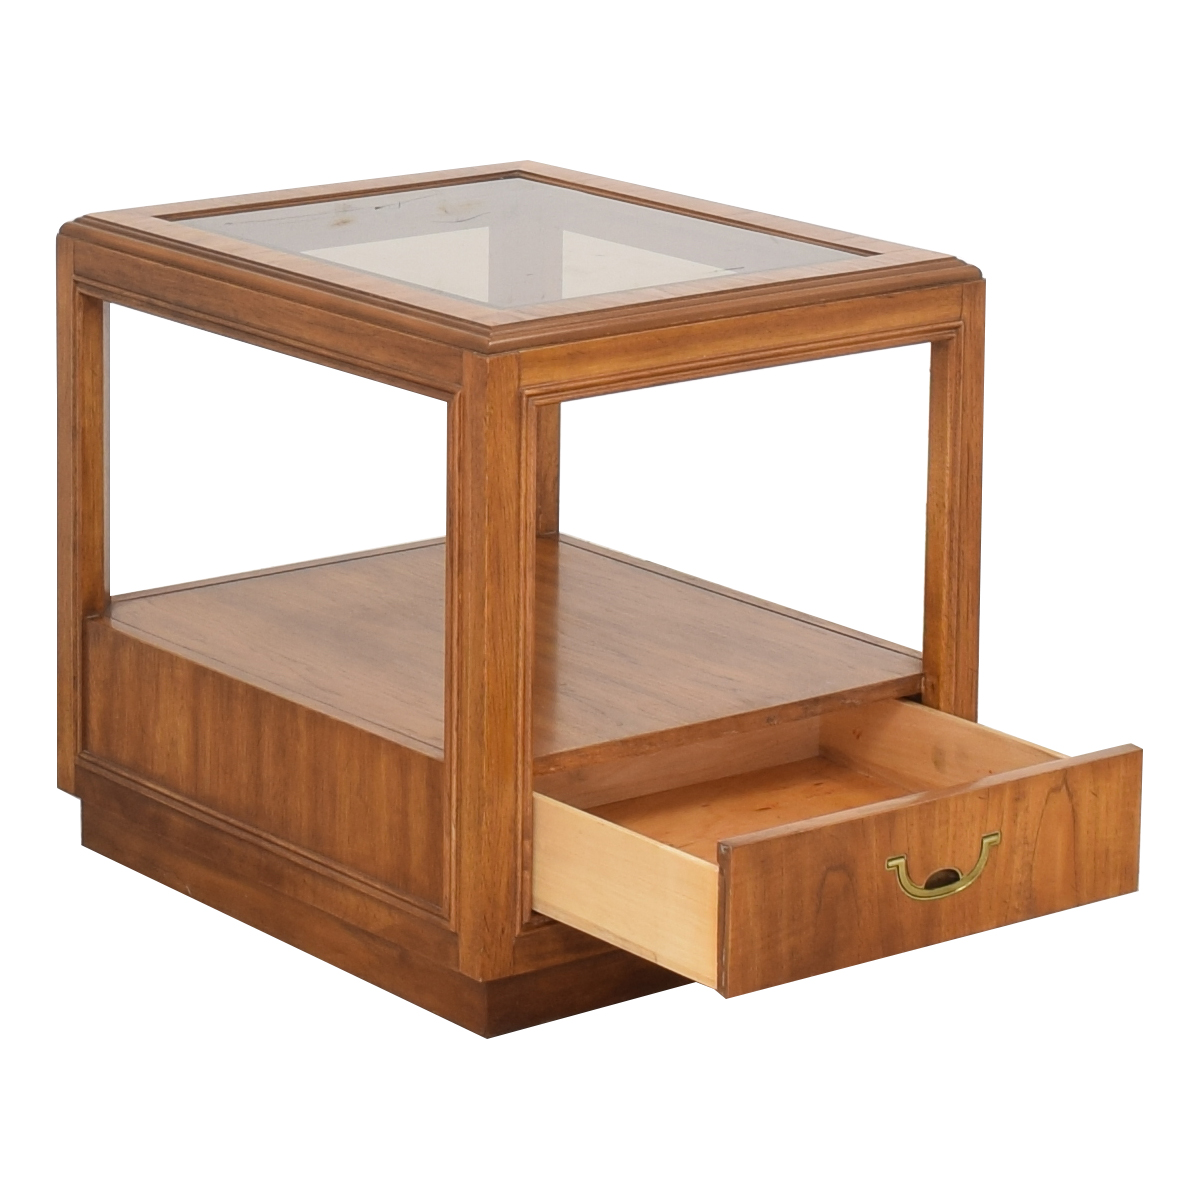 Drexel Heritage Drexel Heritage Glass Top Side Table ma